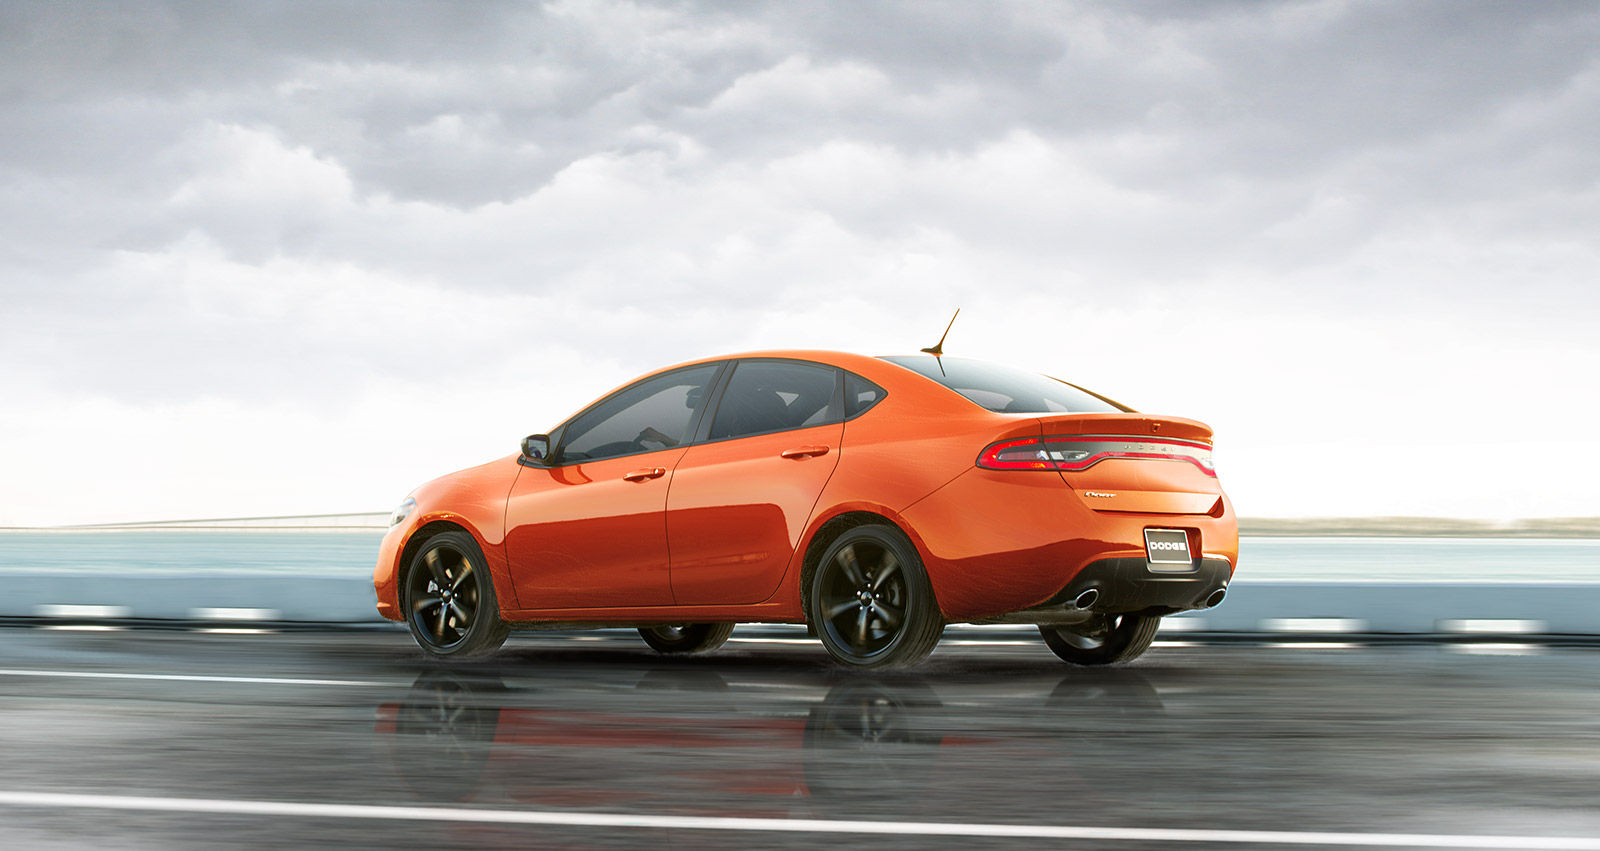 final front cut gt models sales dart news view lineup in year three sedan dodge to